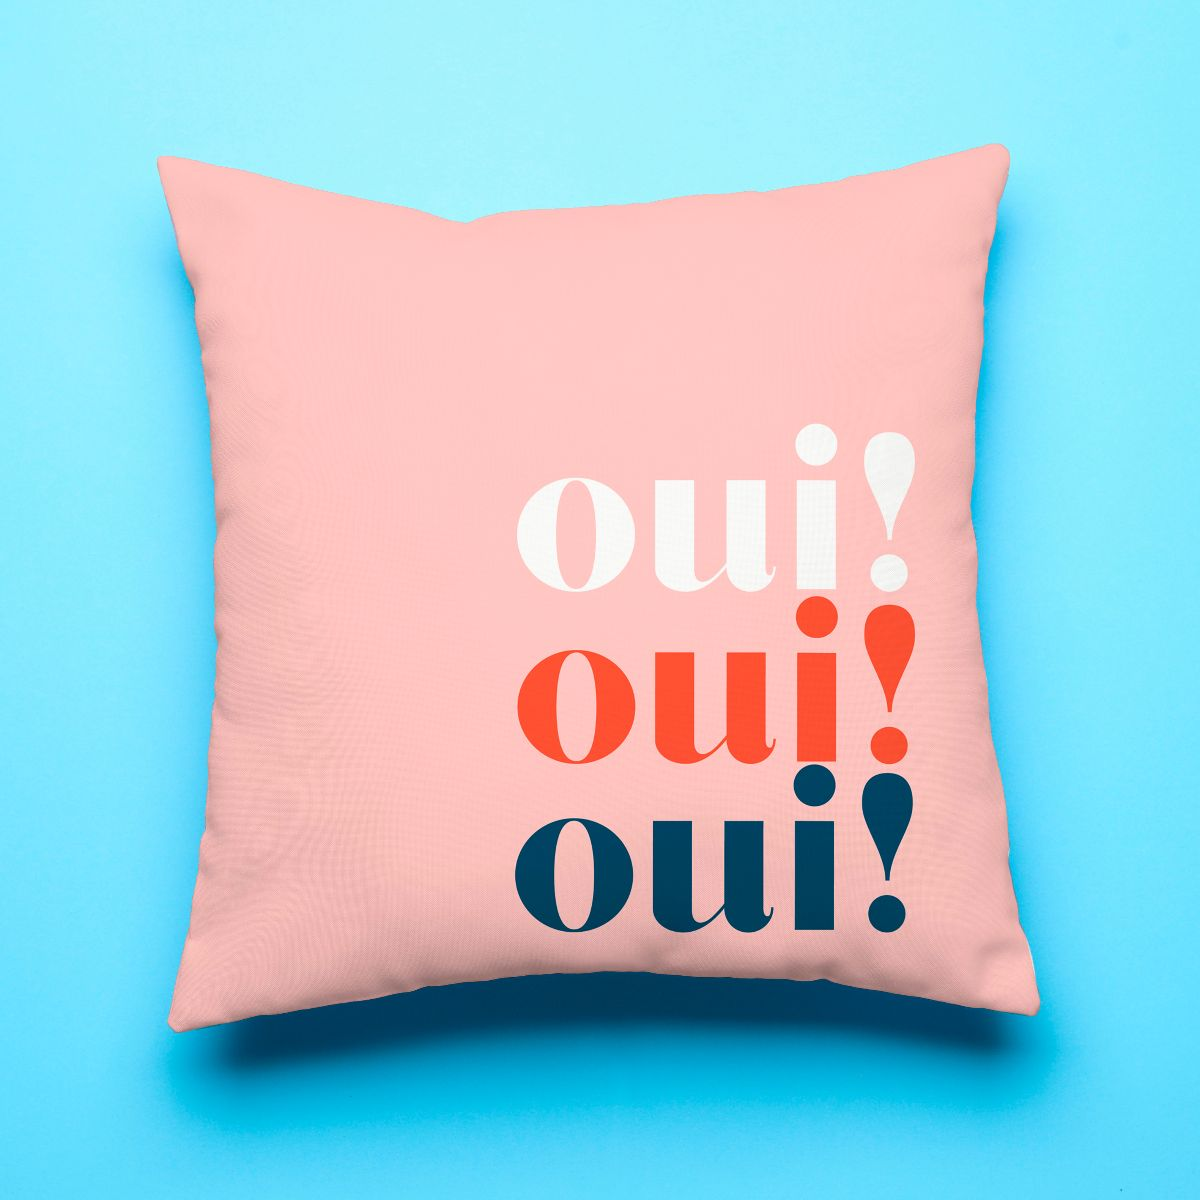 Quirky cushions from UK